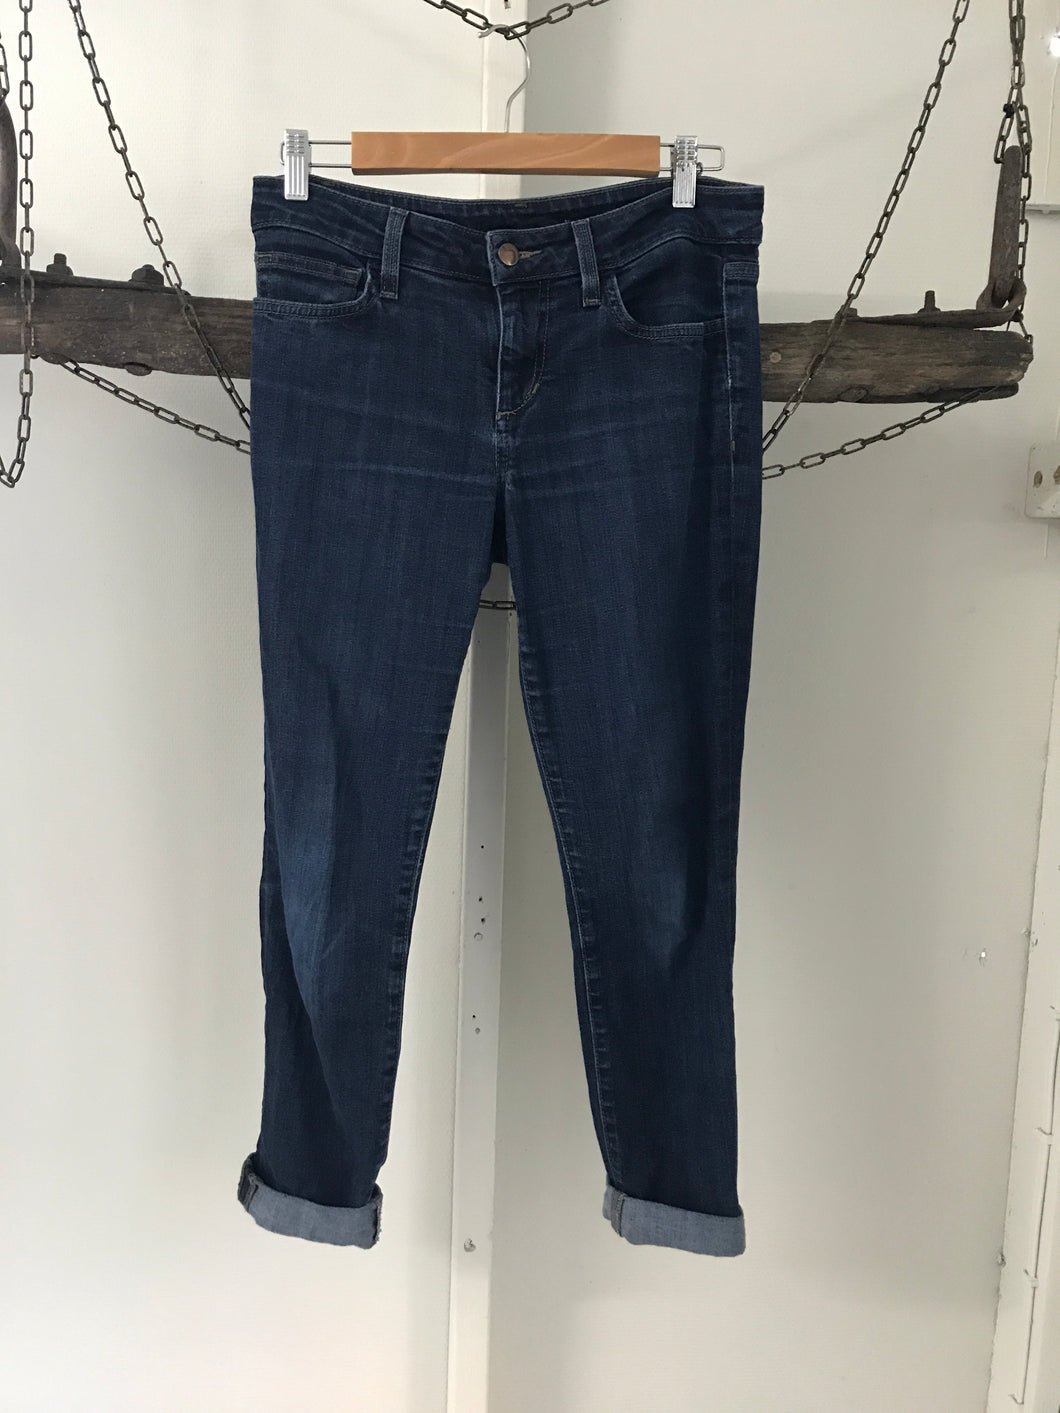 Joes Capri skinny jeans size 27 (estimated 10)